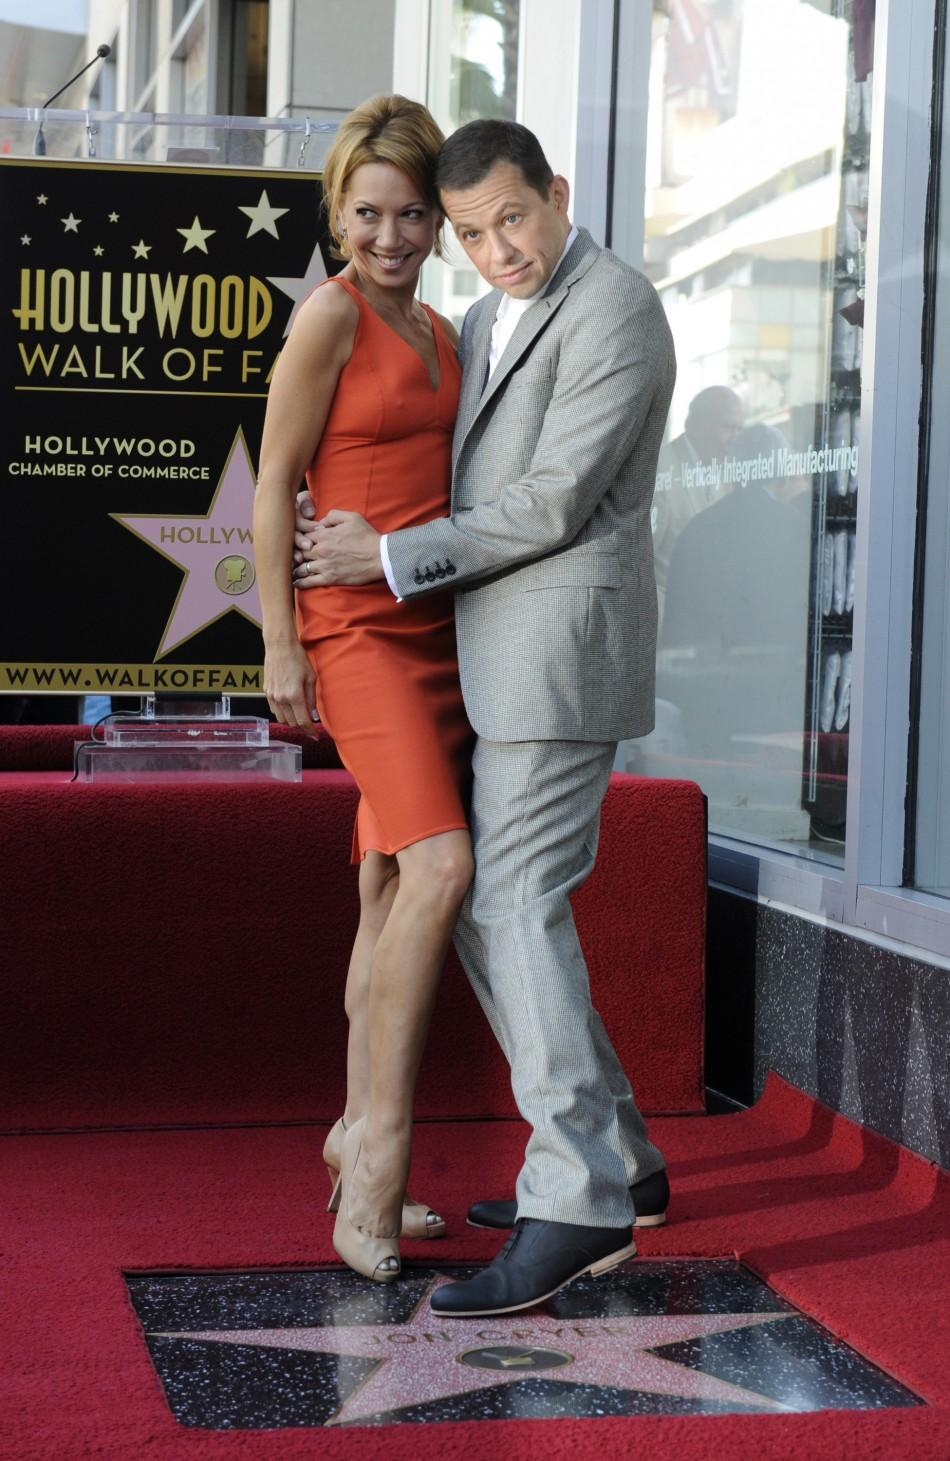 Jon Cryer (R) and his wife Lisa Joyner pose for photographers during a ceremony honoring Cryer with a star on the Hollywood Walk of Fame in Los Angeles